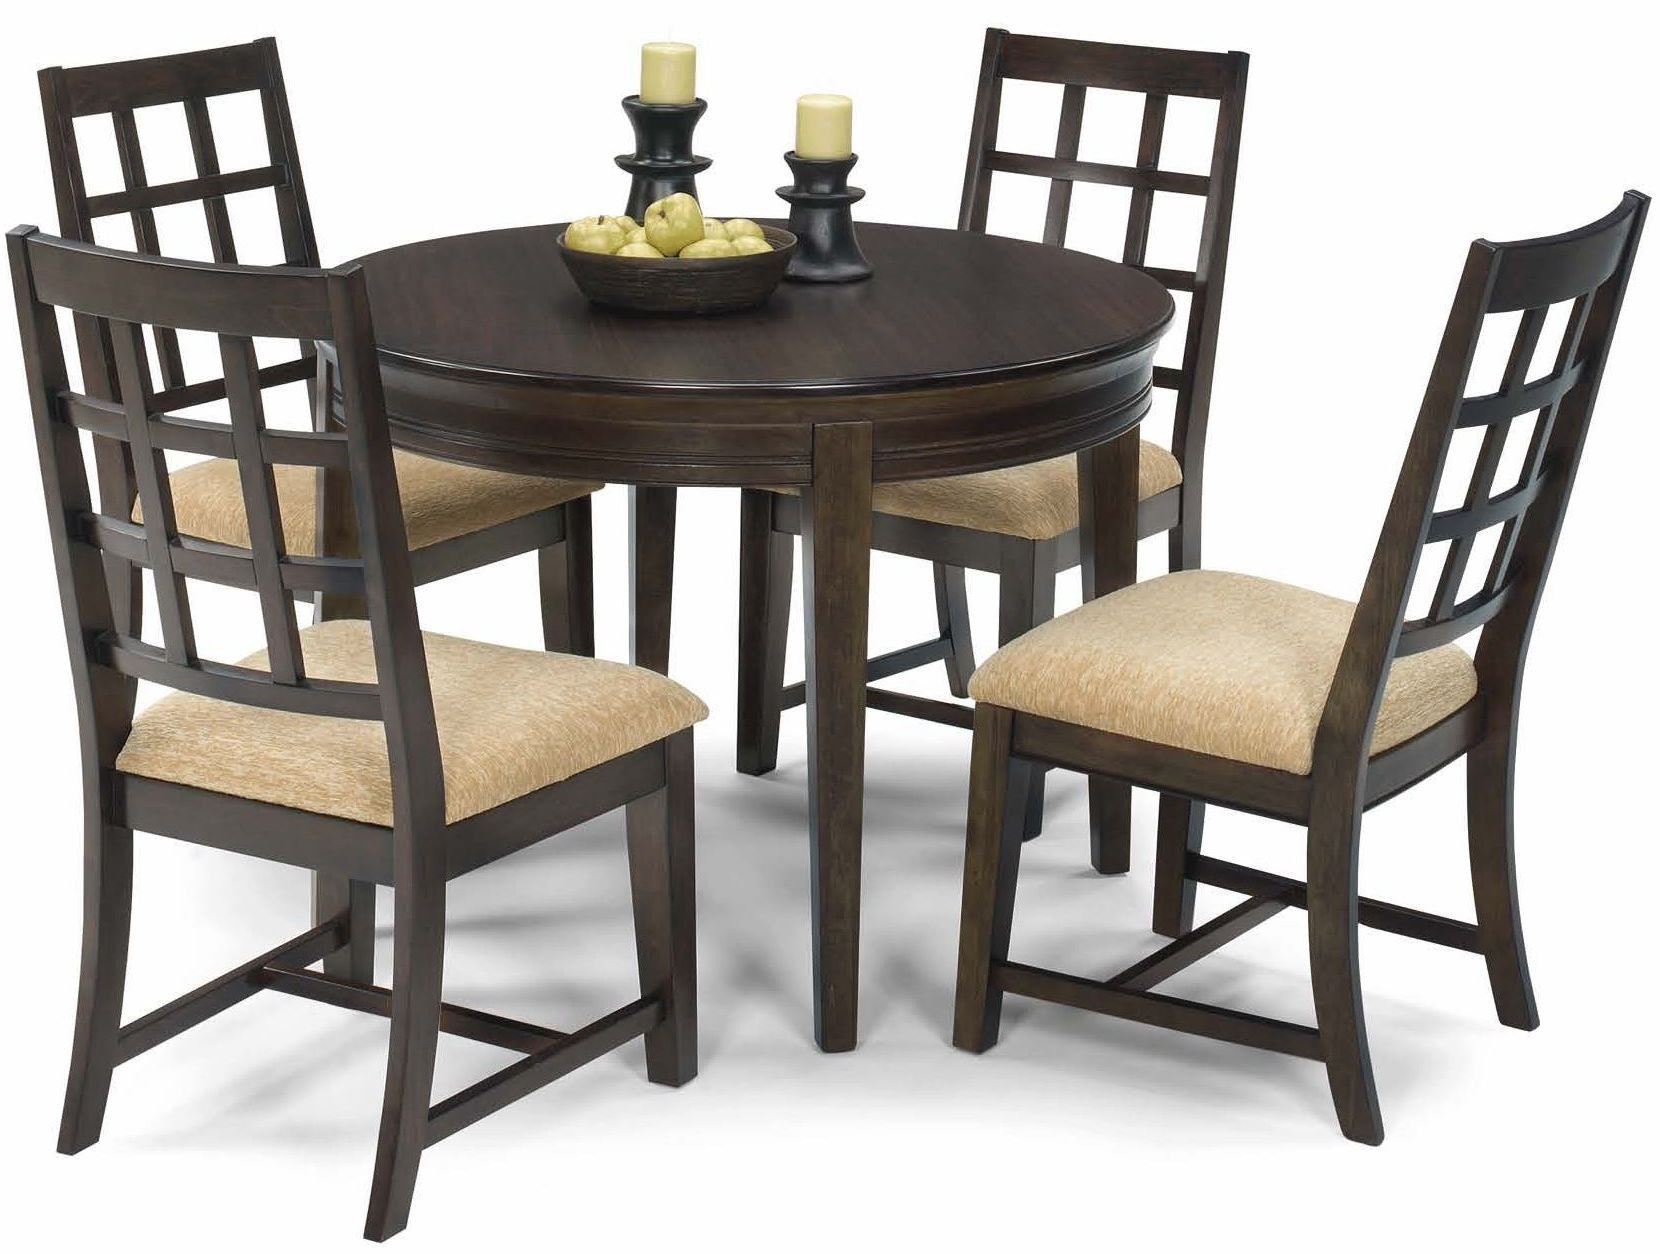 casual traditions walnut round dining room set from progressive furniture coleman furniture. Black Bedroom Furniture Sets. Home Design Ideas